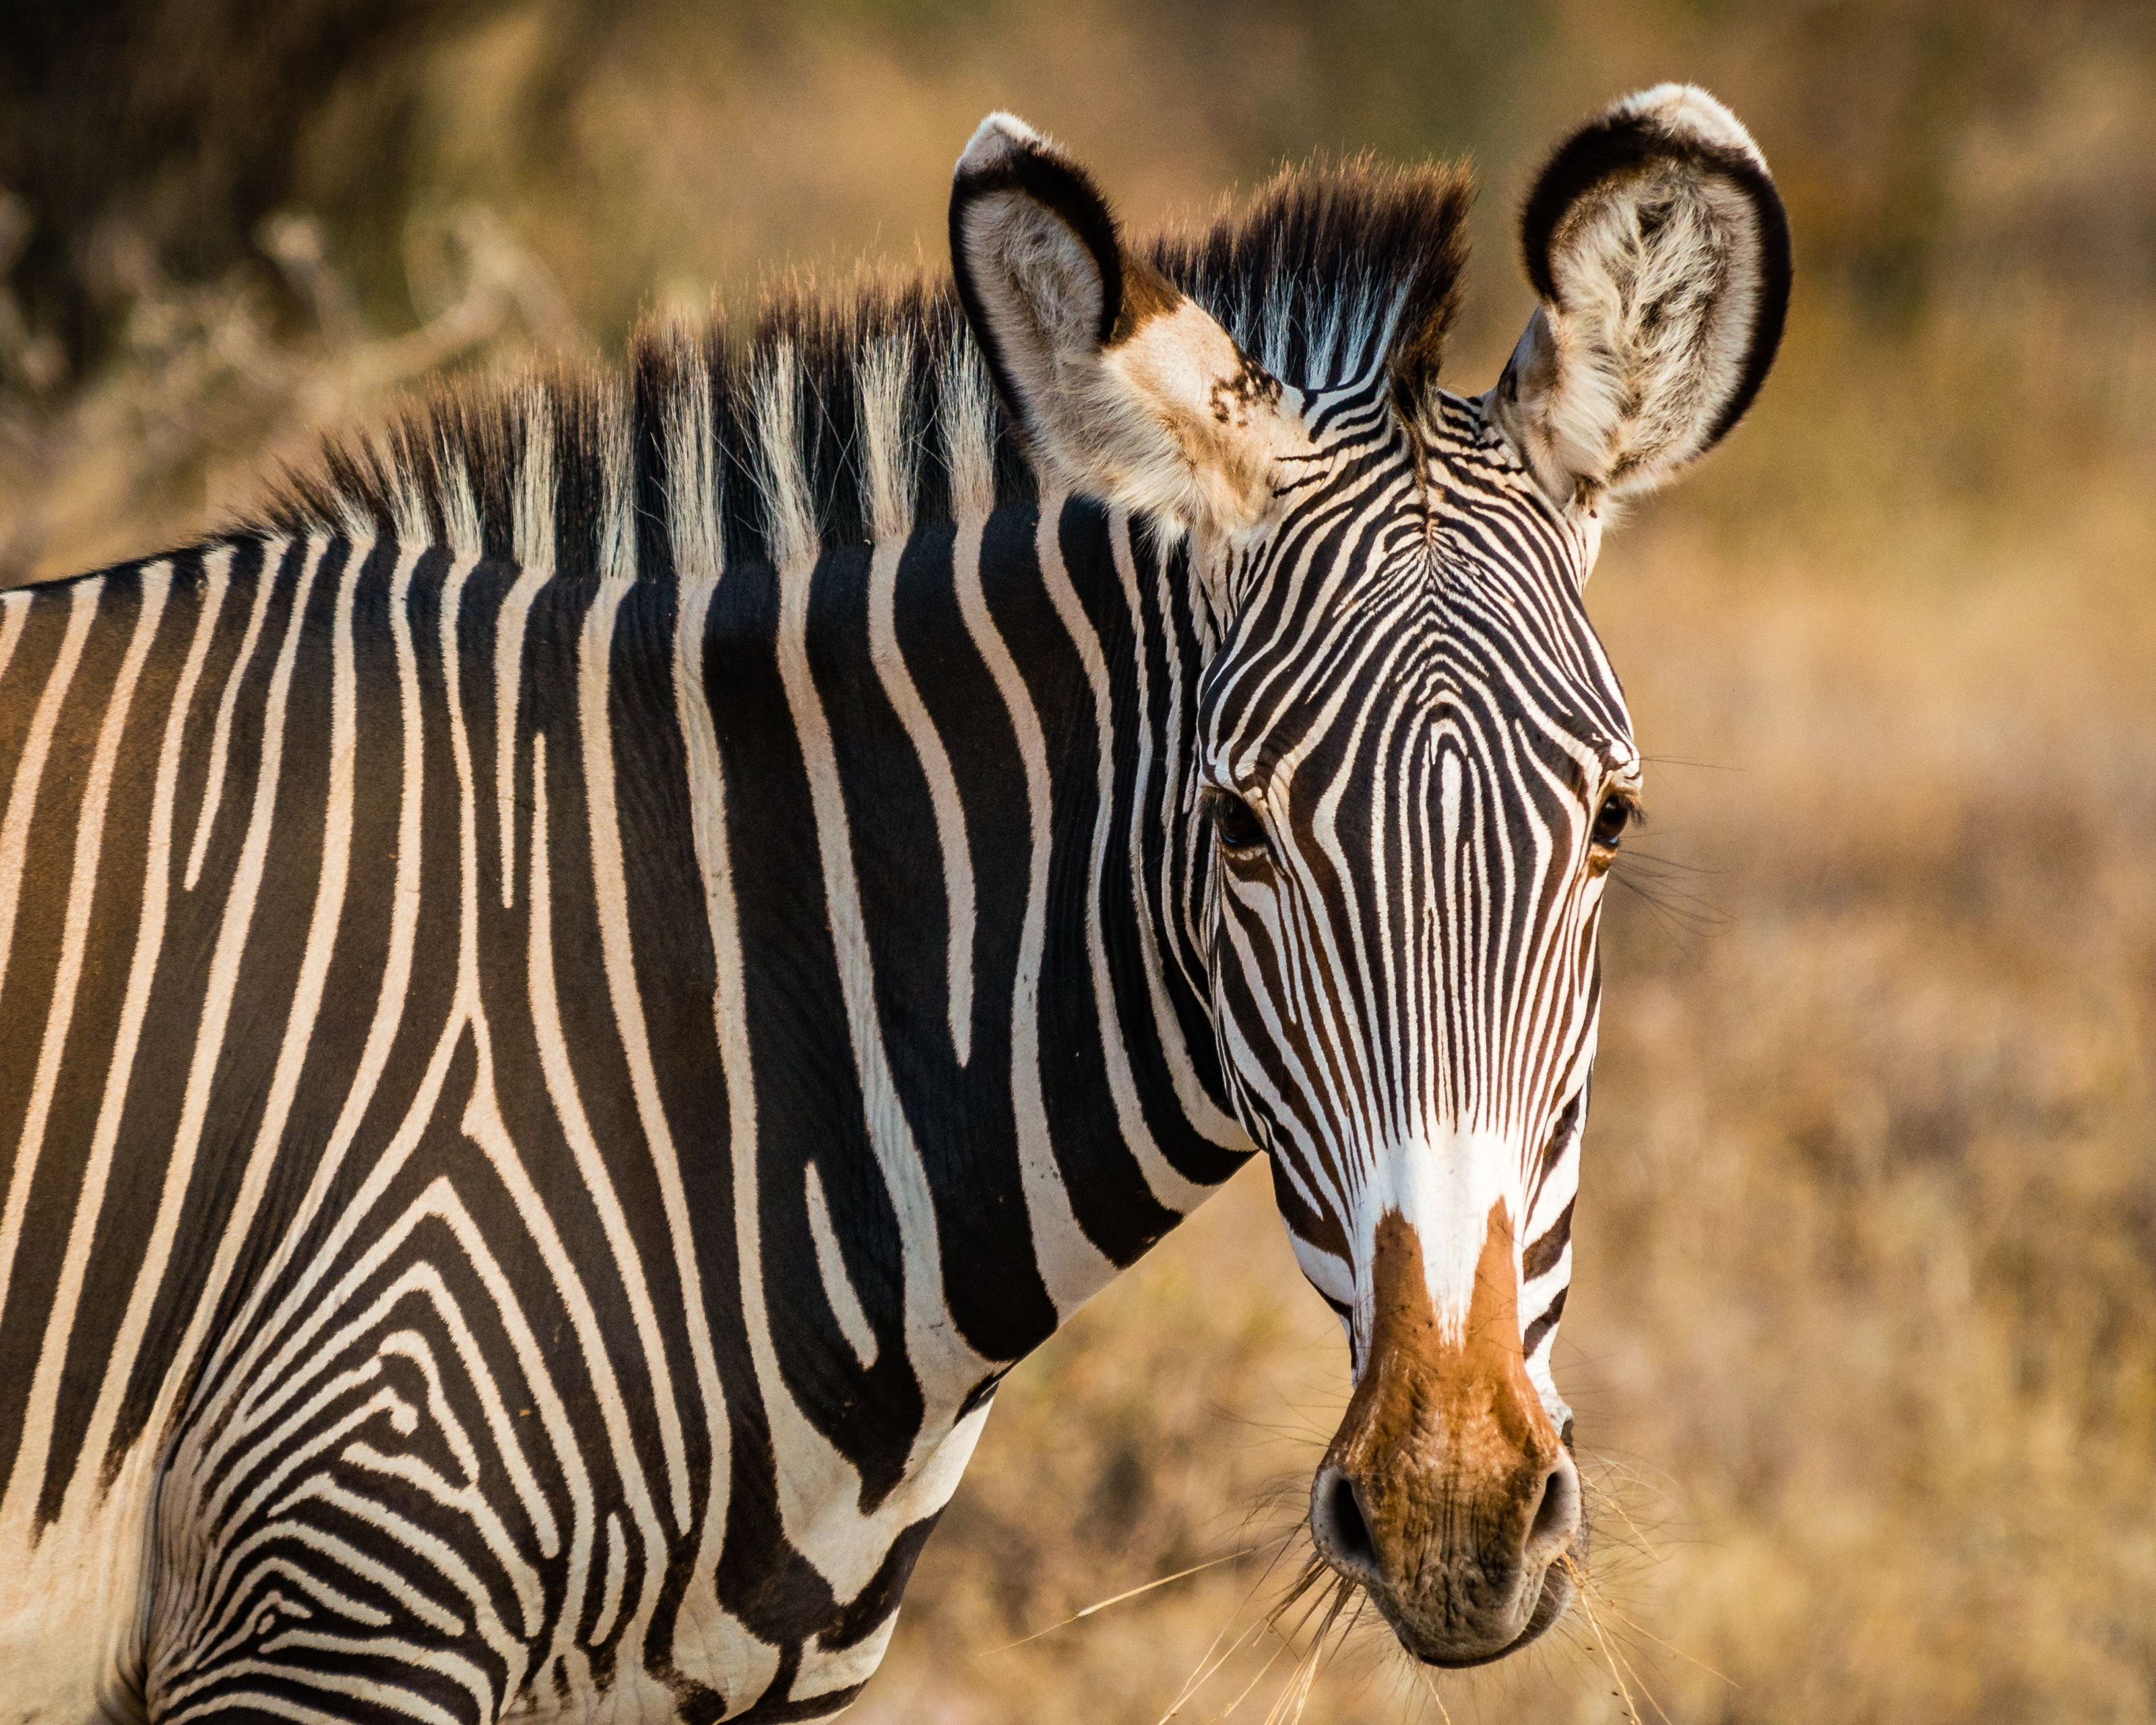 zebra standing on field